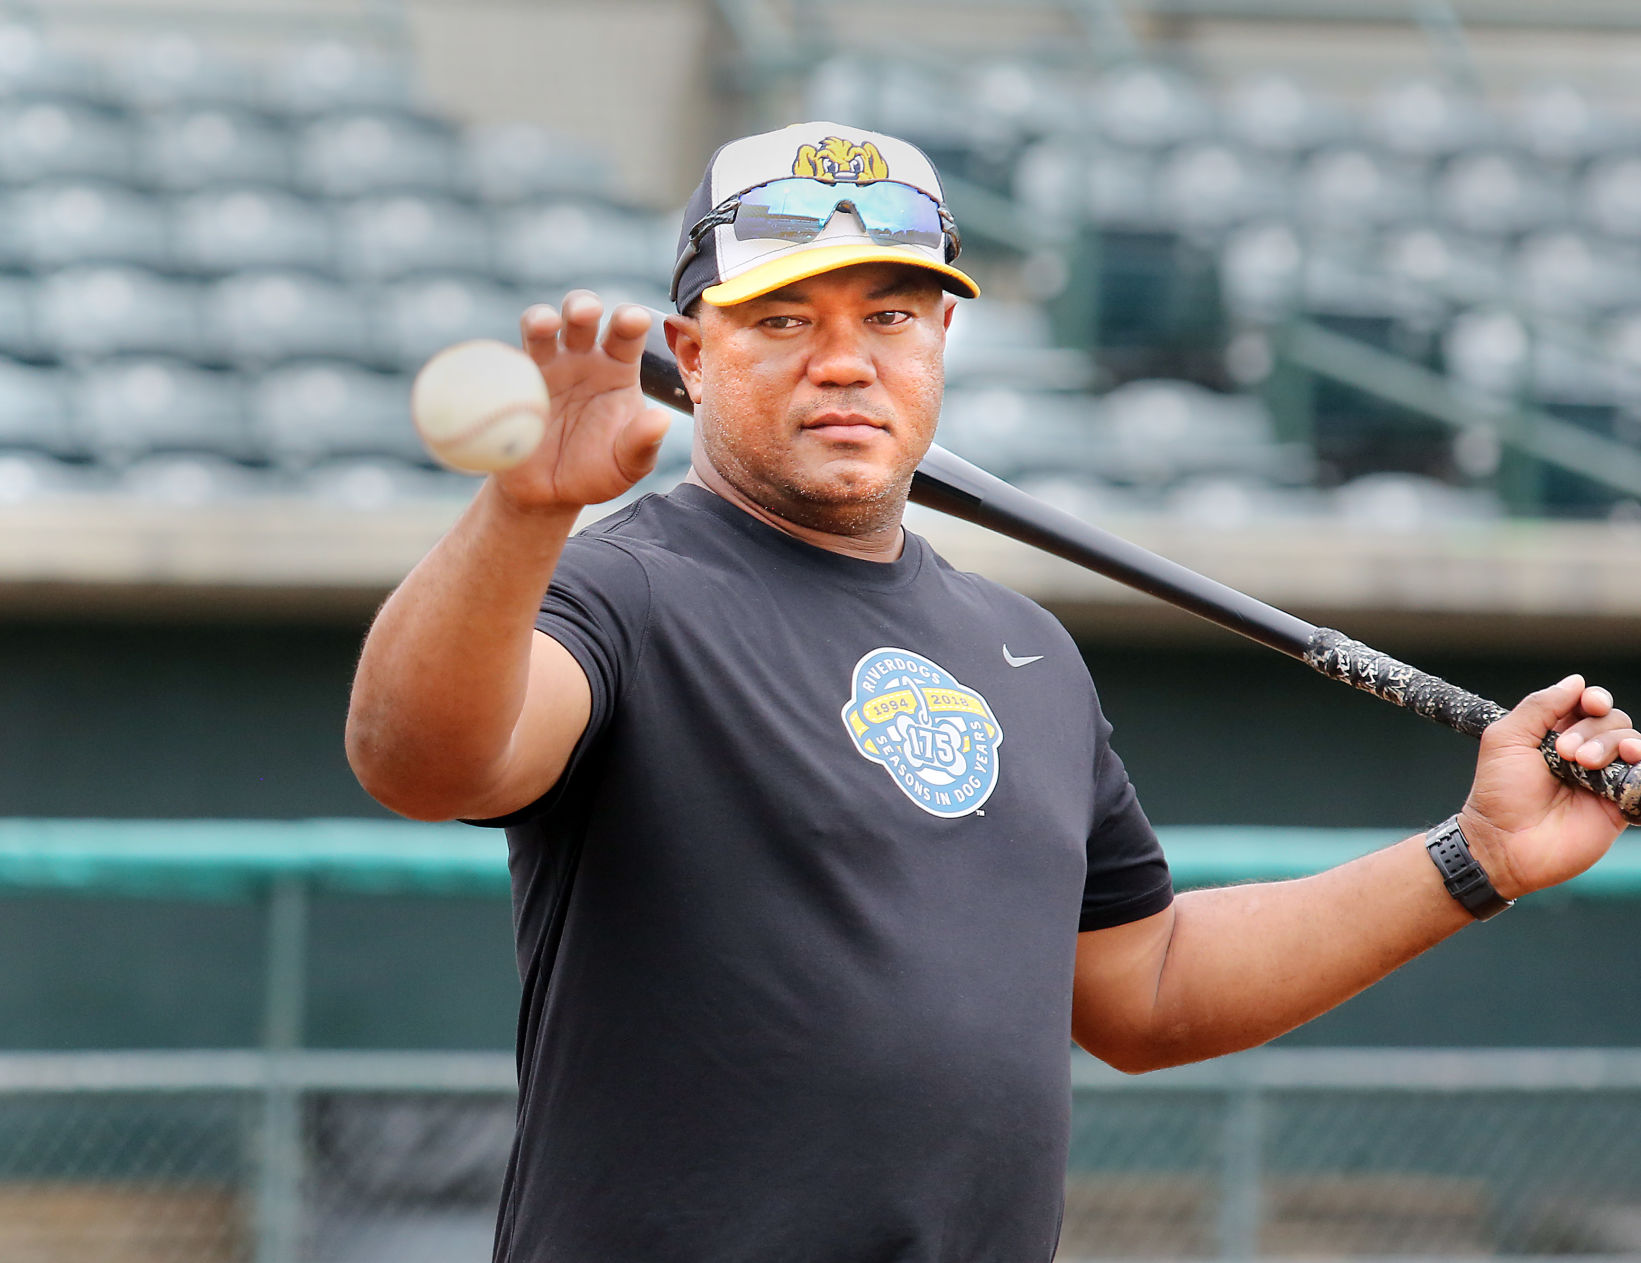 Pro baseball minority manager hires lag behind diversity on the field | Post and Courier